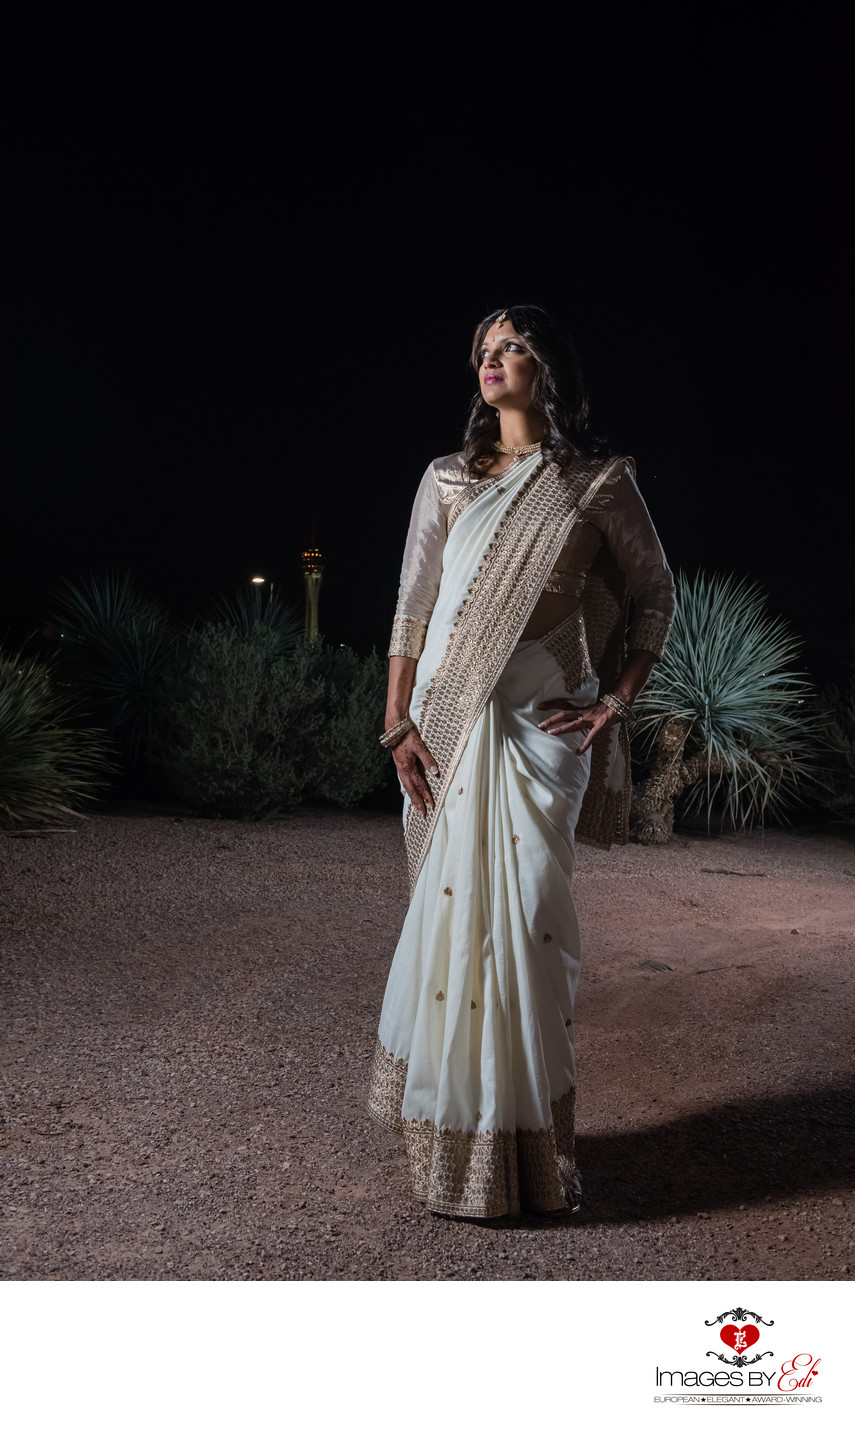 Las Vegas Indian bride alone